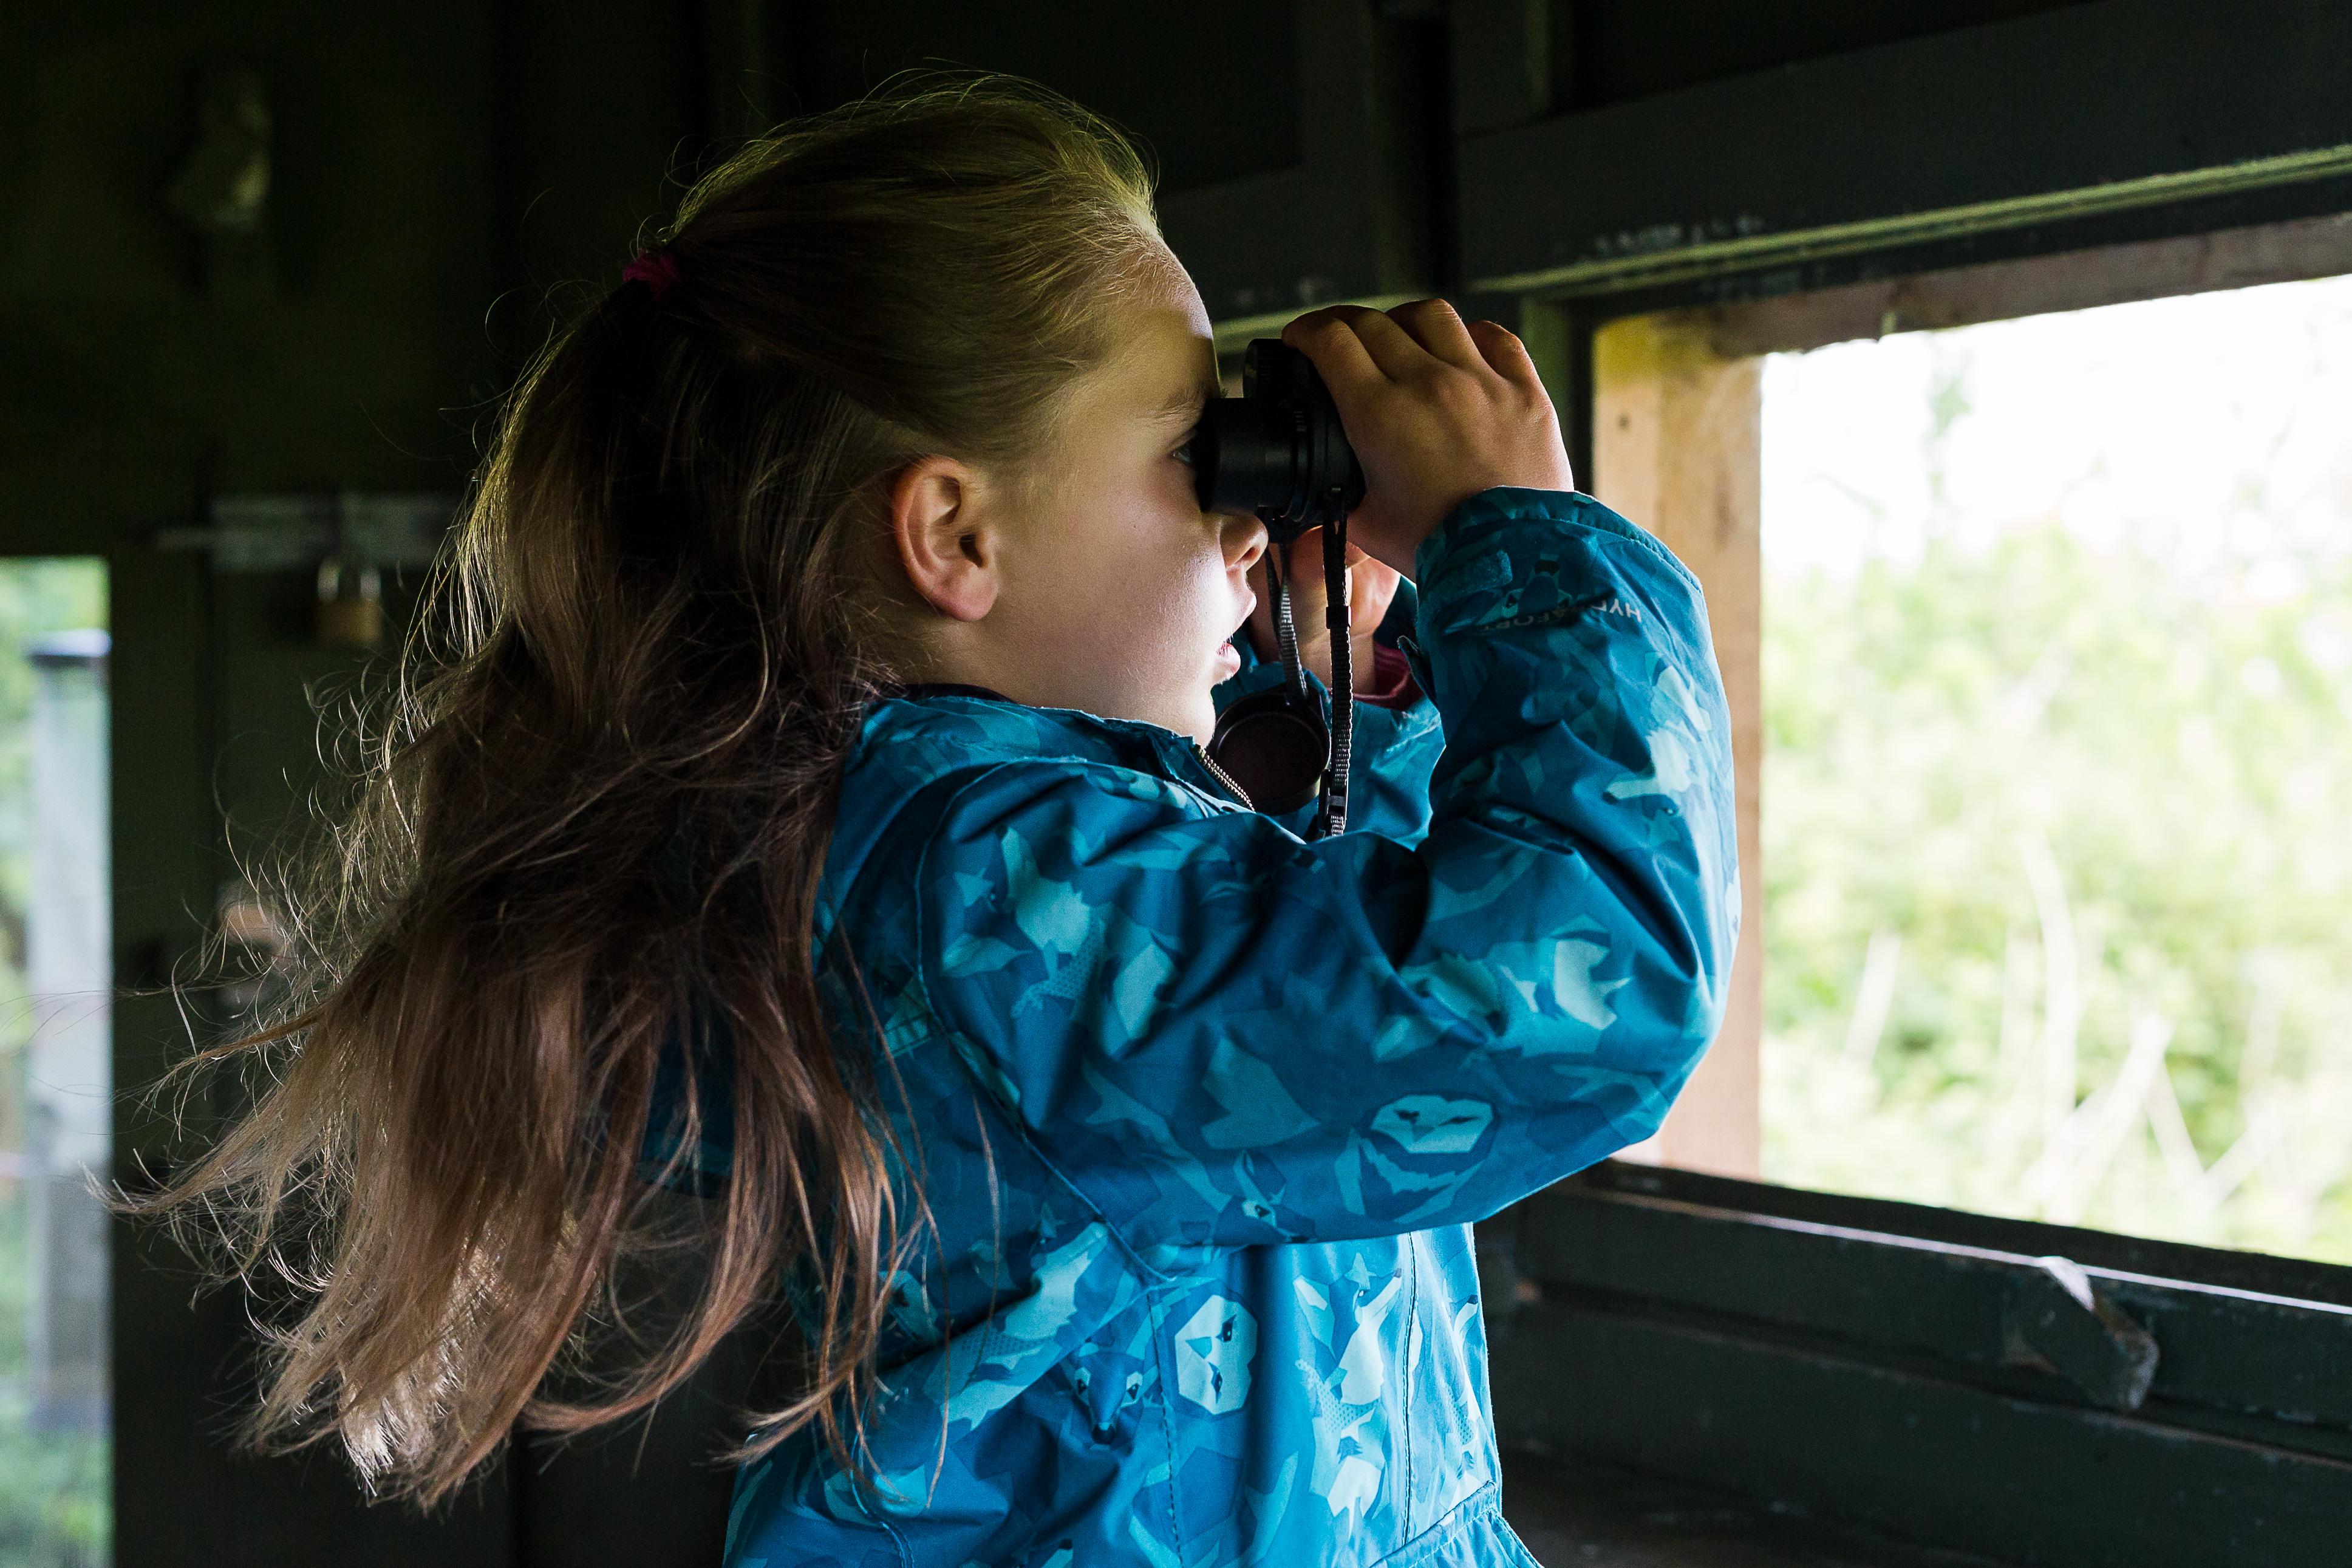 Bird watching for children 20 February (11am to 12noon)